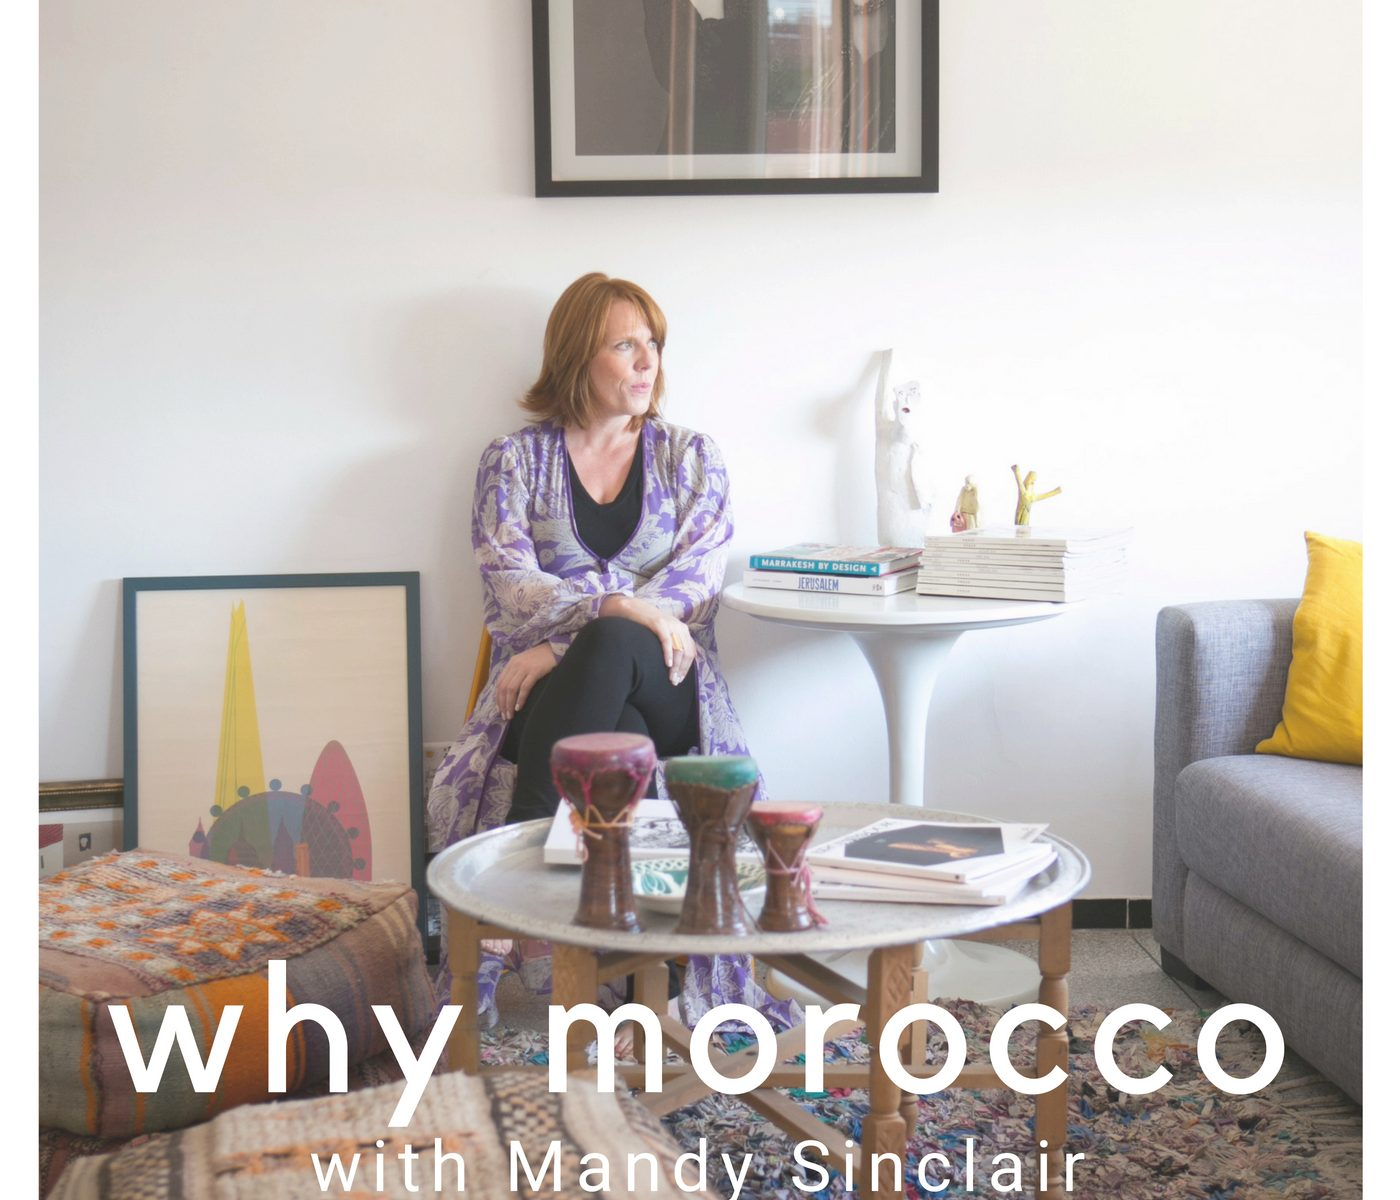 Why Morocco cover image podcast about Morocco with Mandy Sinclair / Mandy in Morocco